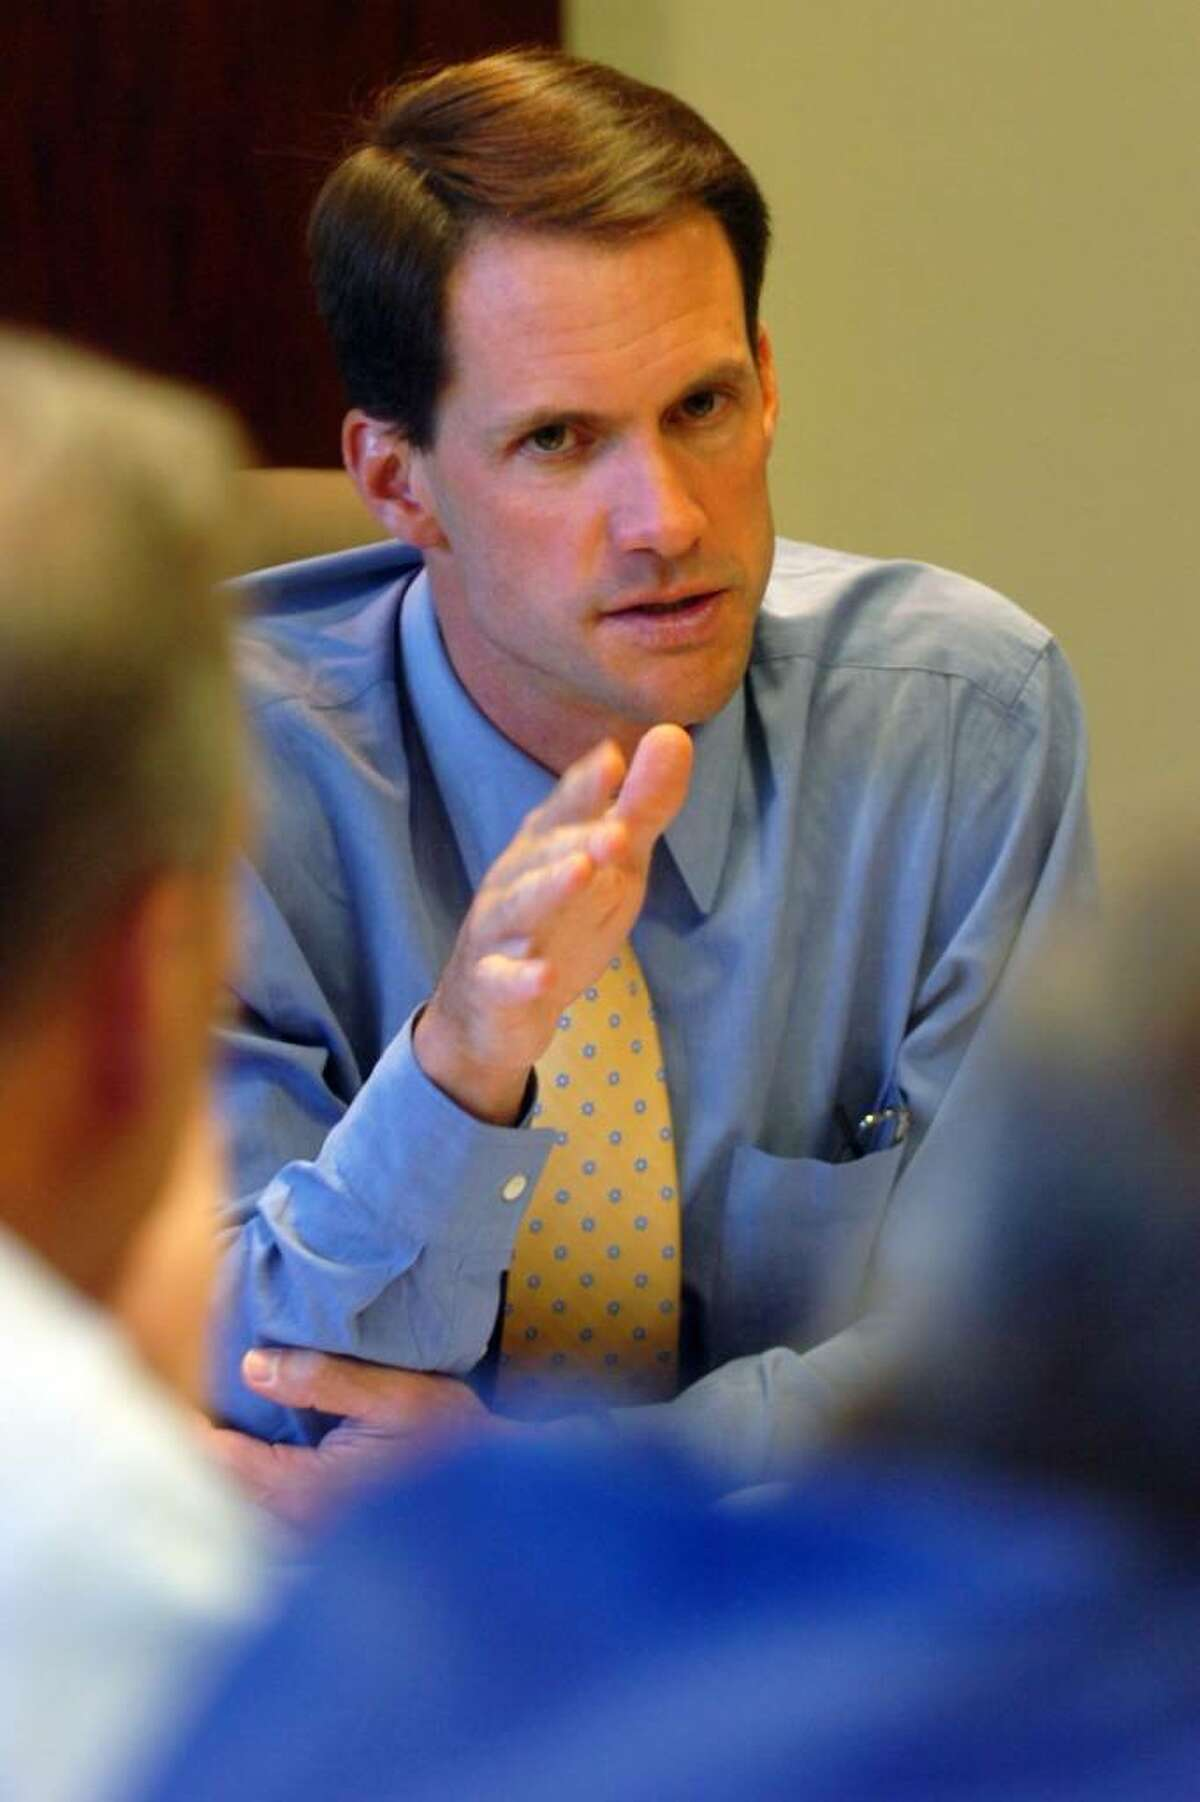 Congressman Jim Himes meets with members of the Fairfield County Medical Association in Trumbull, Conn. on Thursday, Aug. 27, 2009.